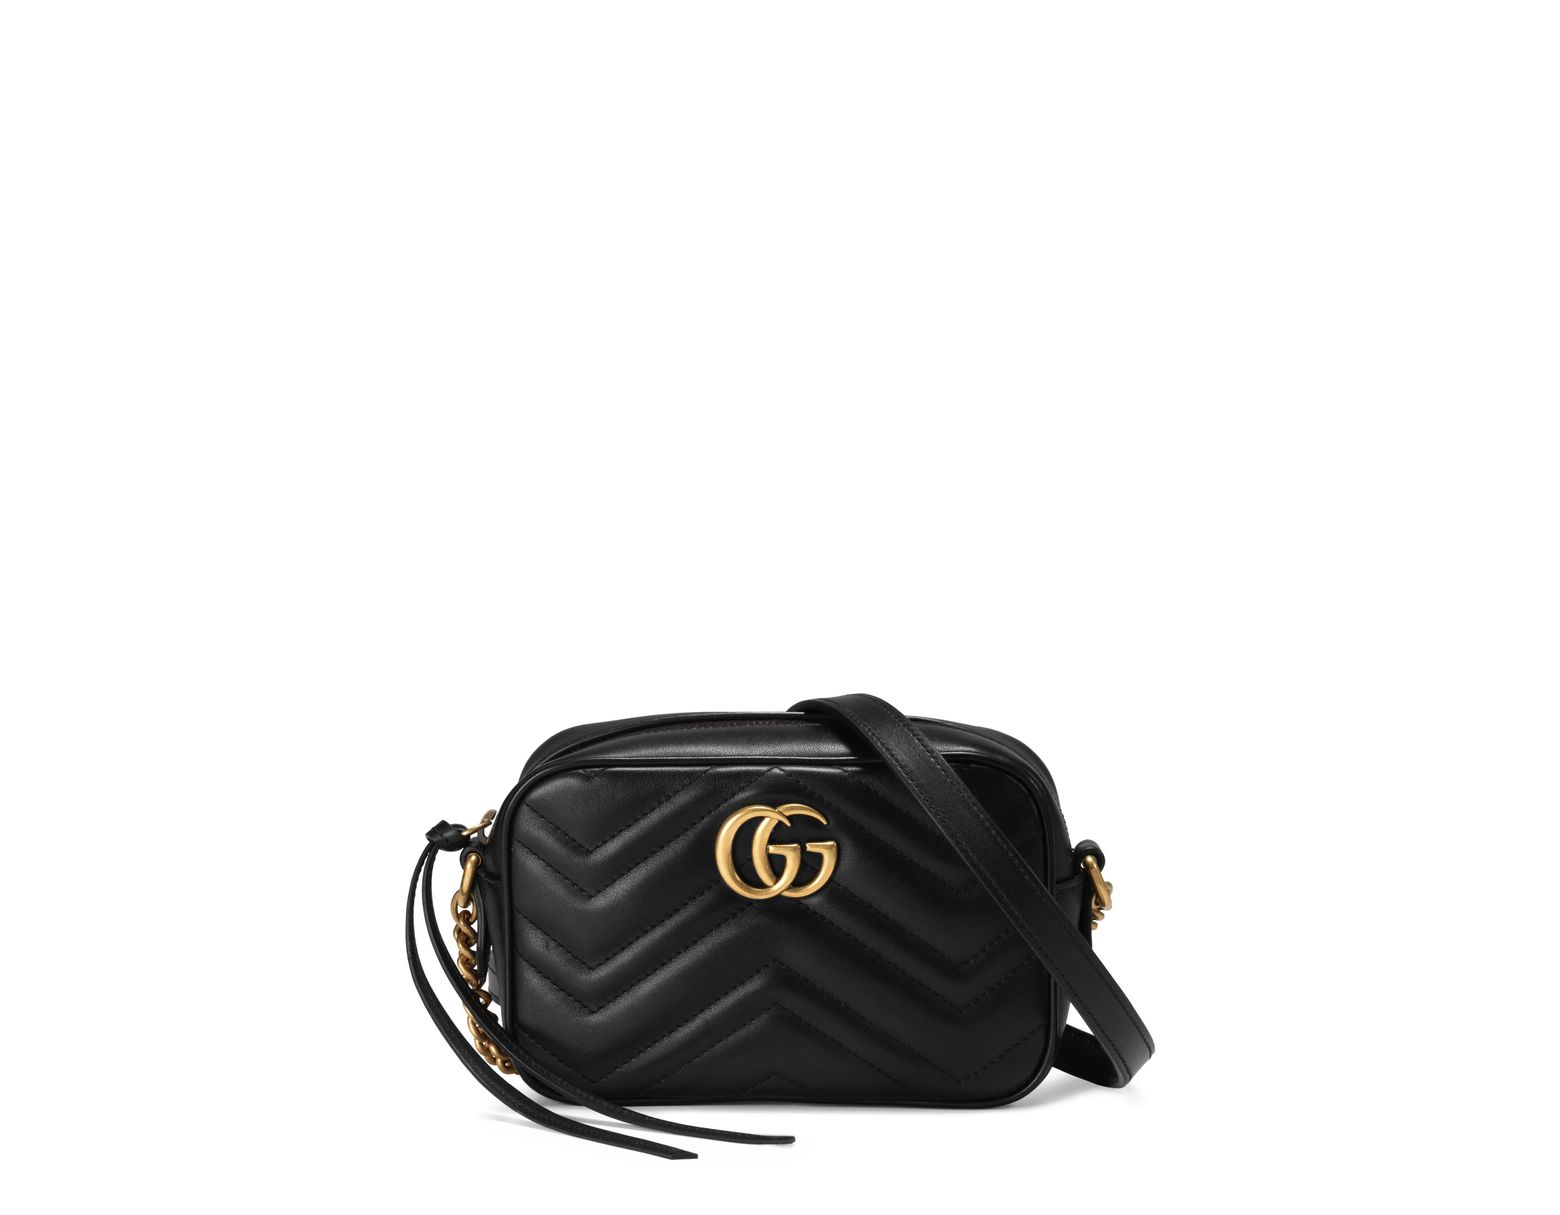 d8e7151bea91 Gucci GG Marmont Camera Bag in Black - Save 22% - Lyst